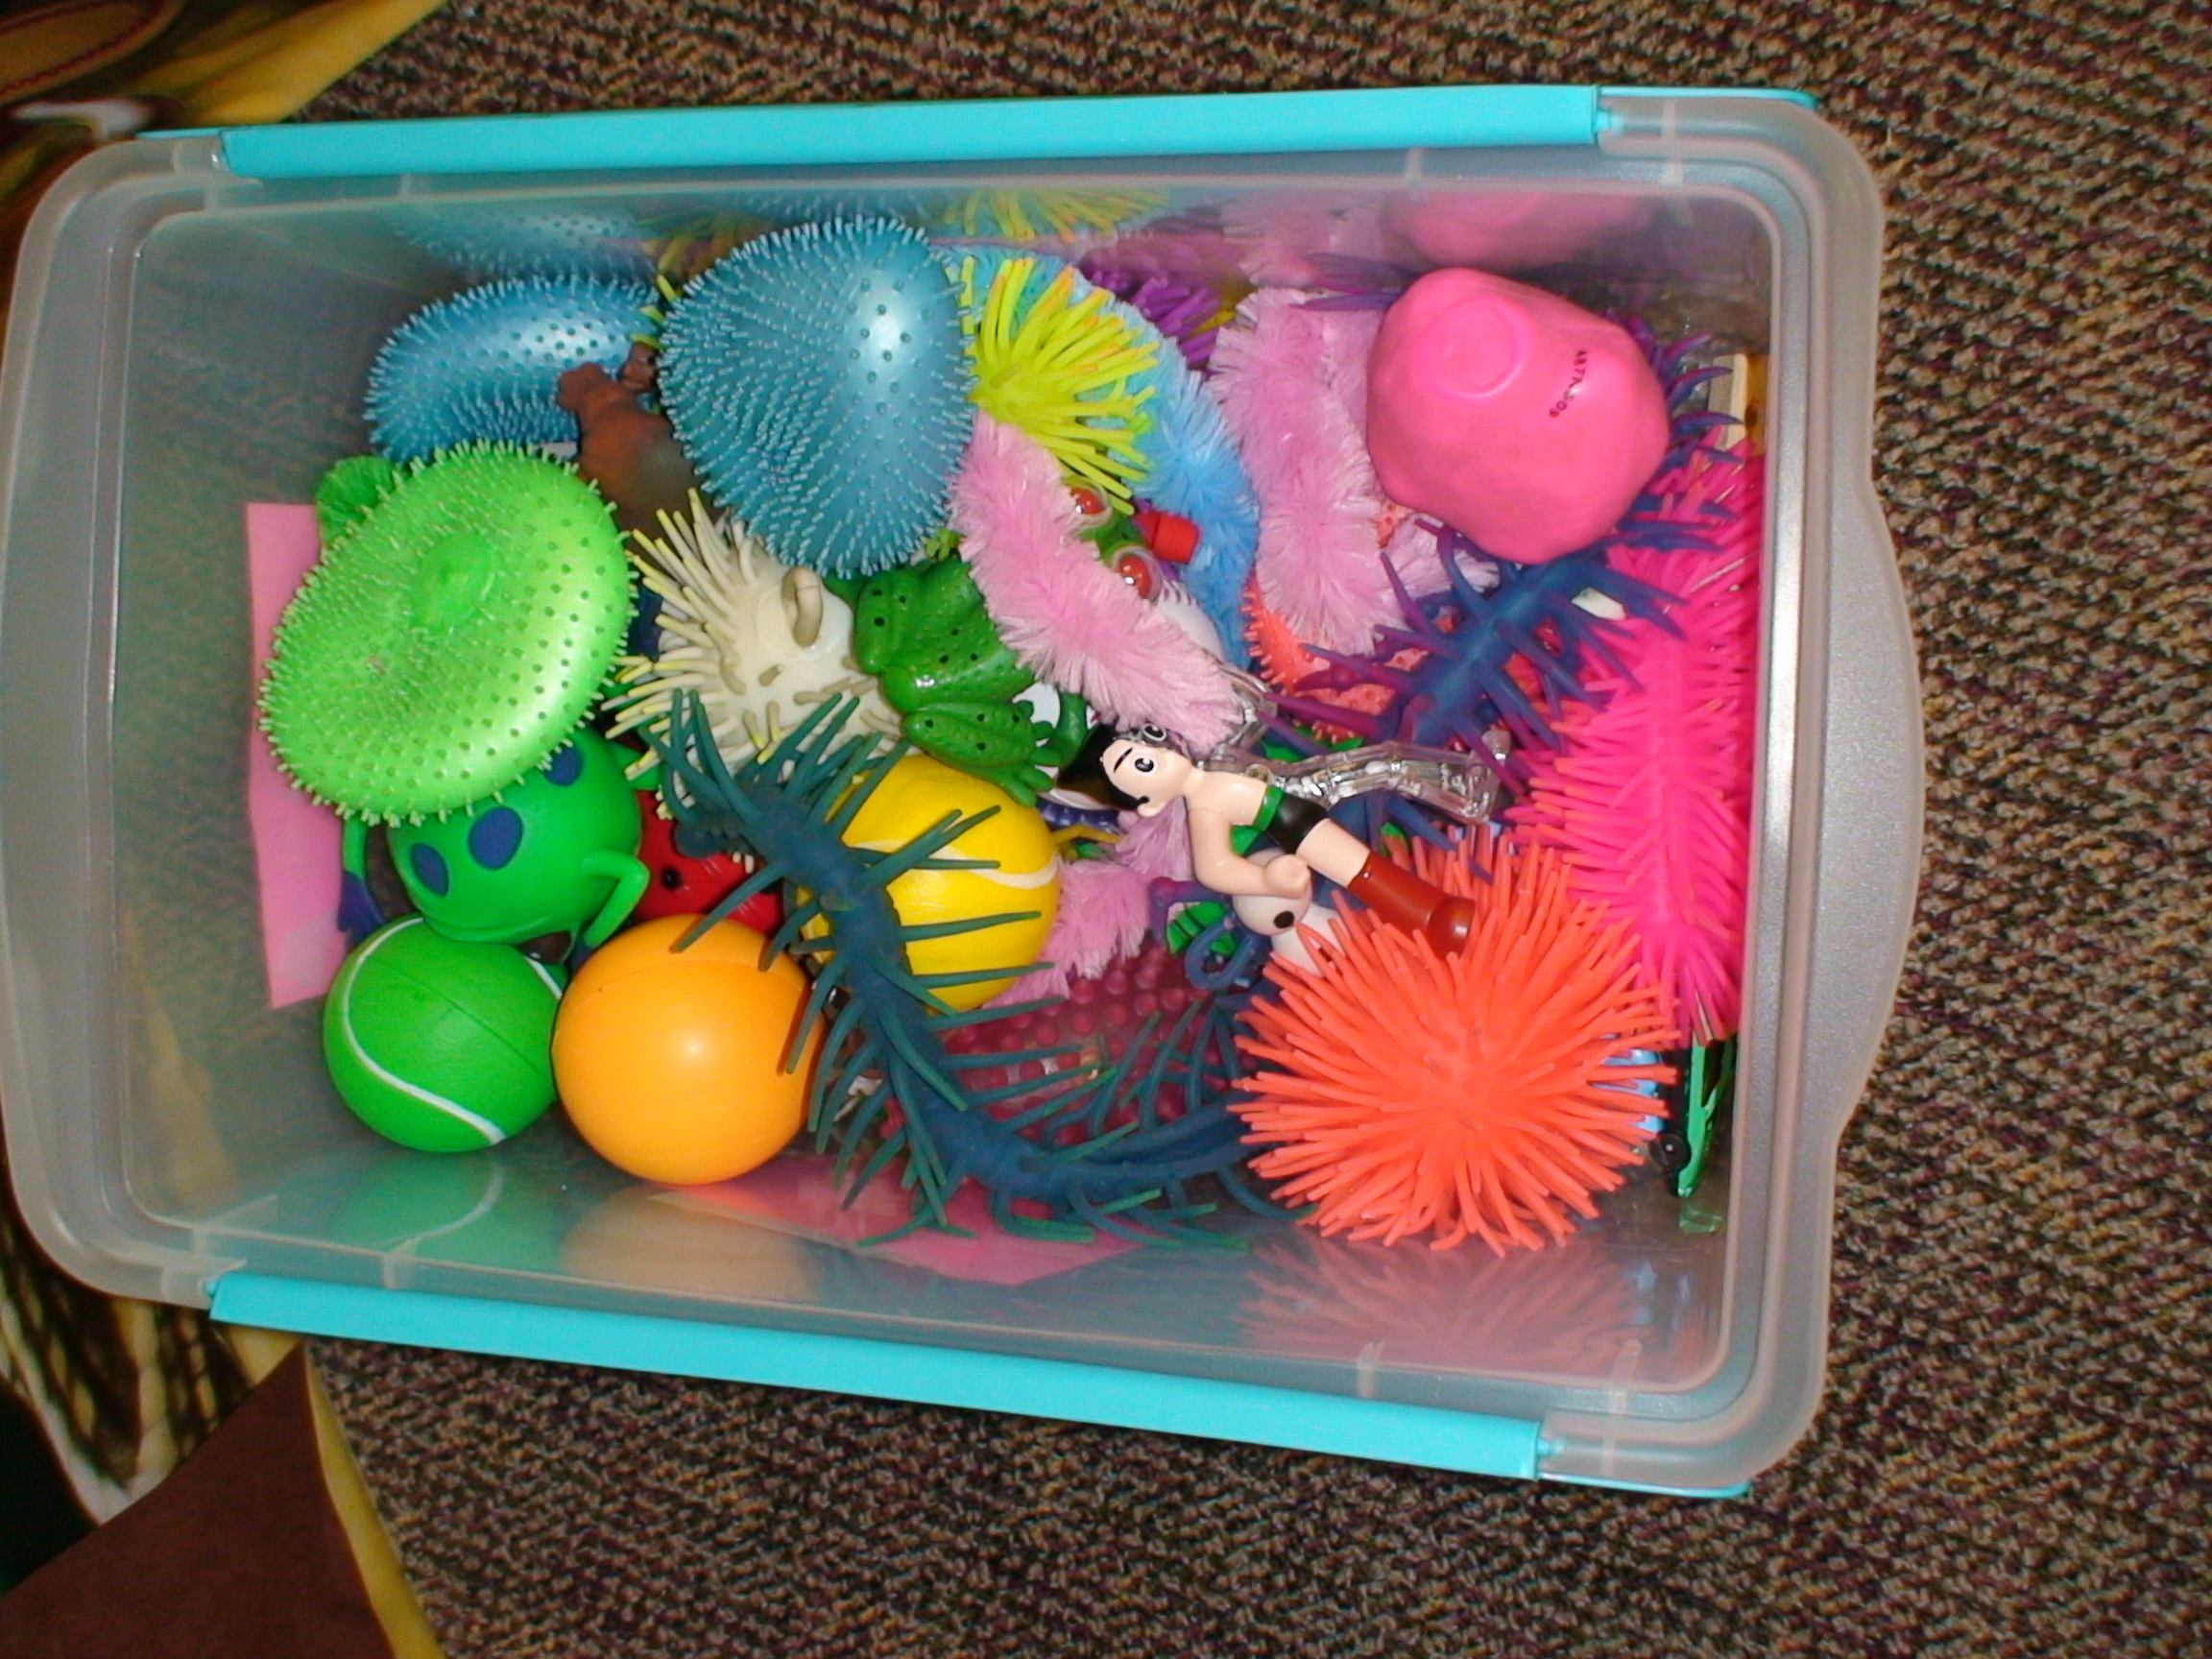 Sensory Toys Autism : Providing a sensory toy box and how slinky can help